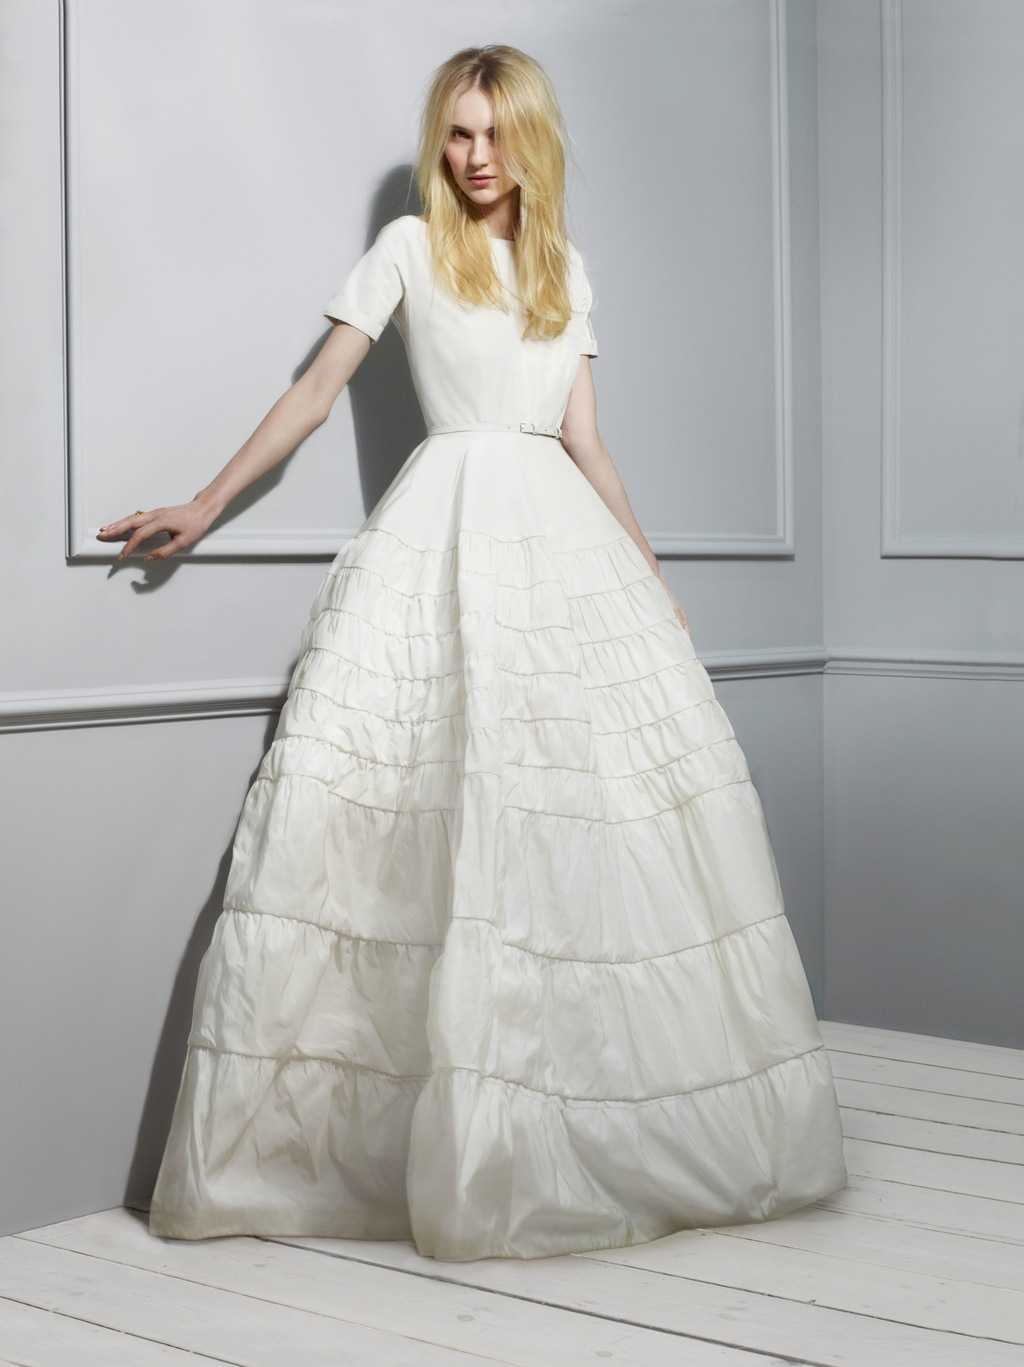 Taffeta wedding dress 2013 exclusive bridal designer collection rochas taffeta wedding dress 2013 exclusive bridal designer collection from net a porter ombrellifo Images